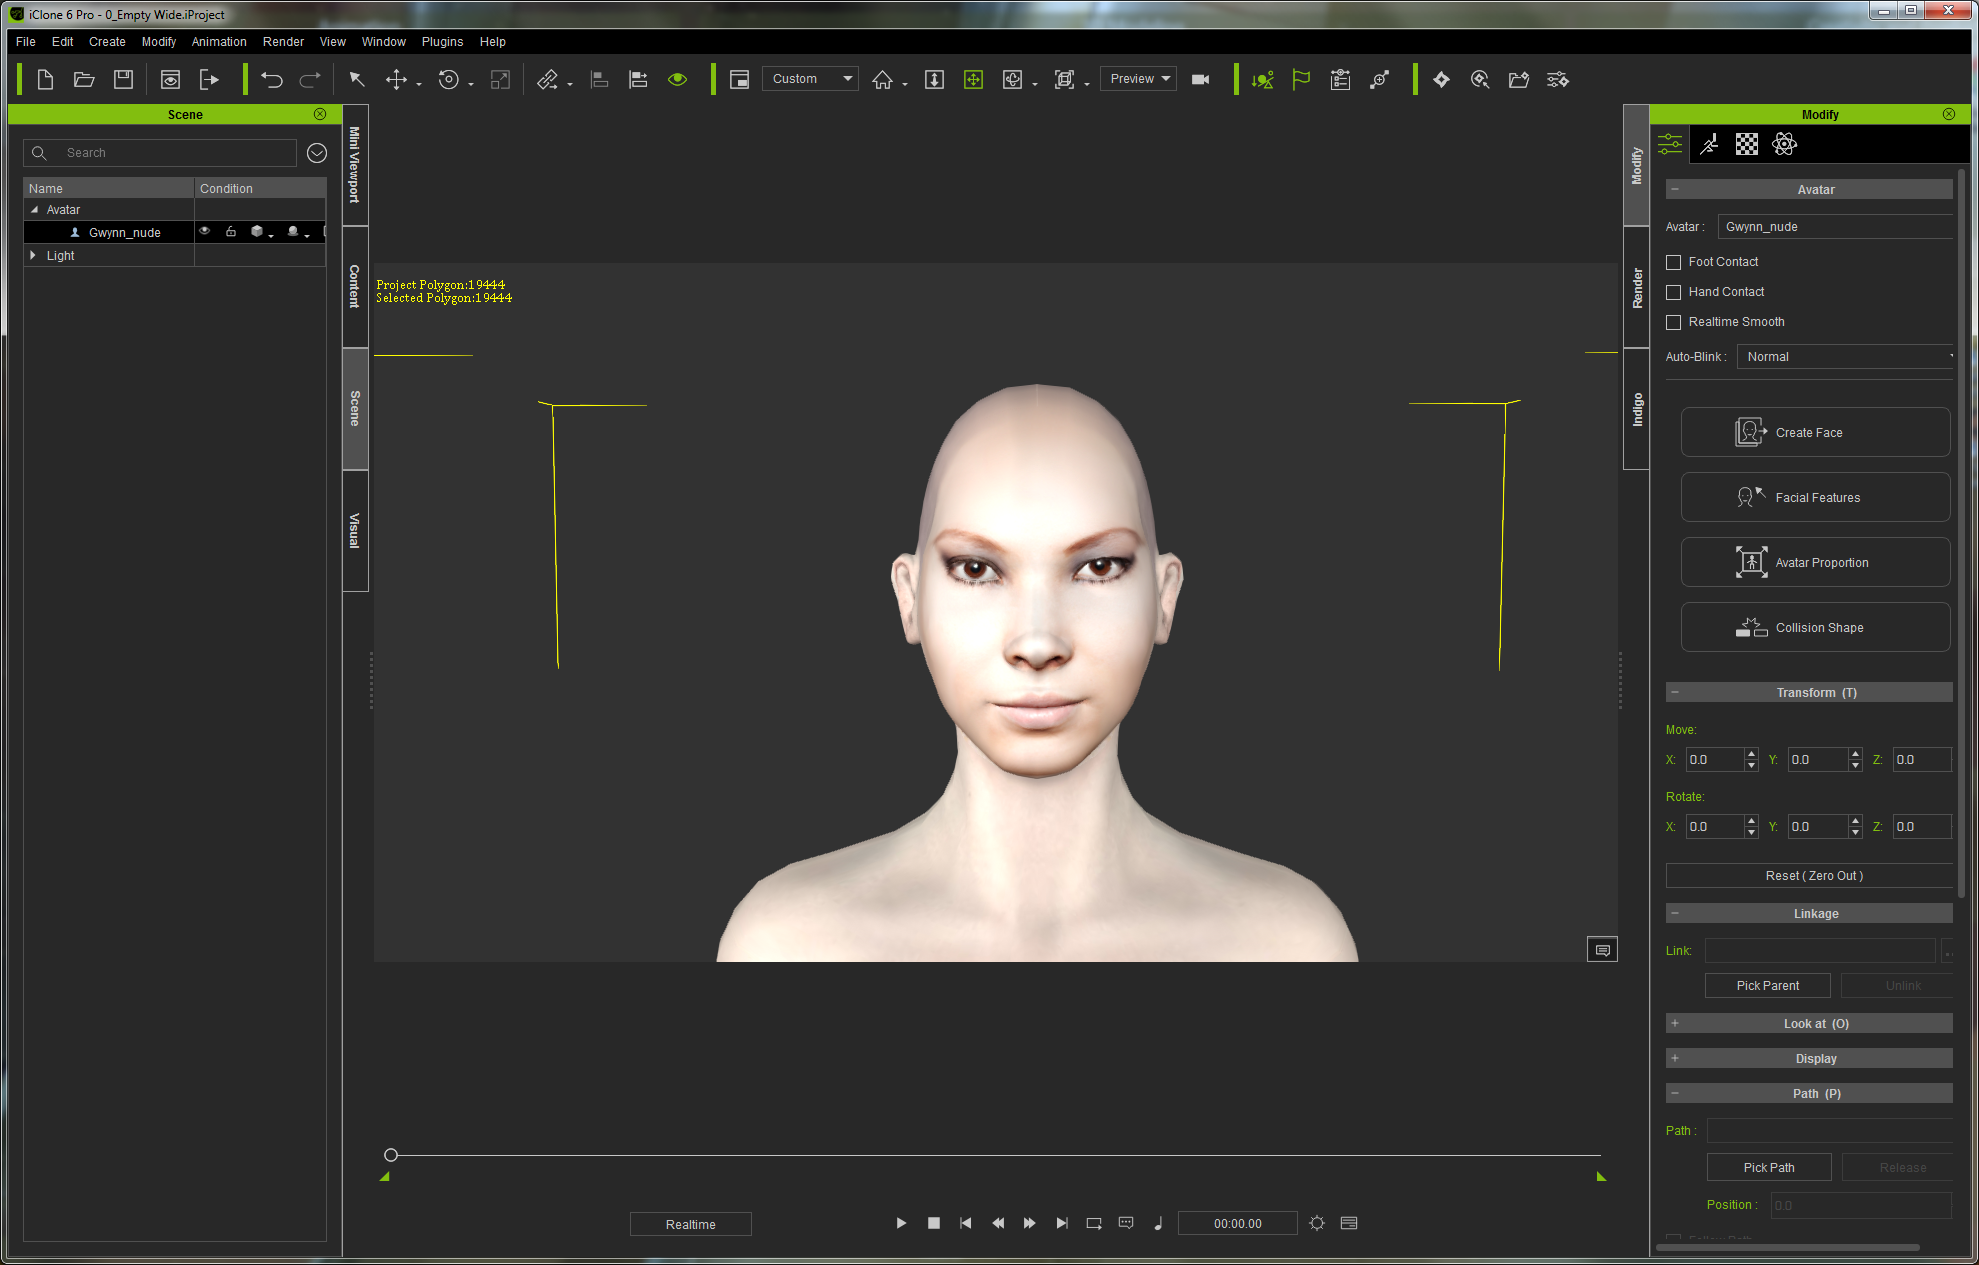 16a_face_model_changed.png